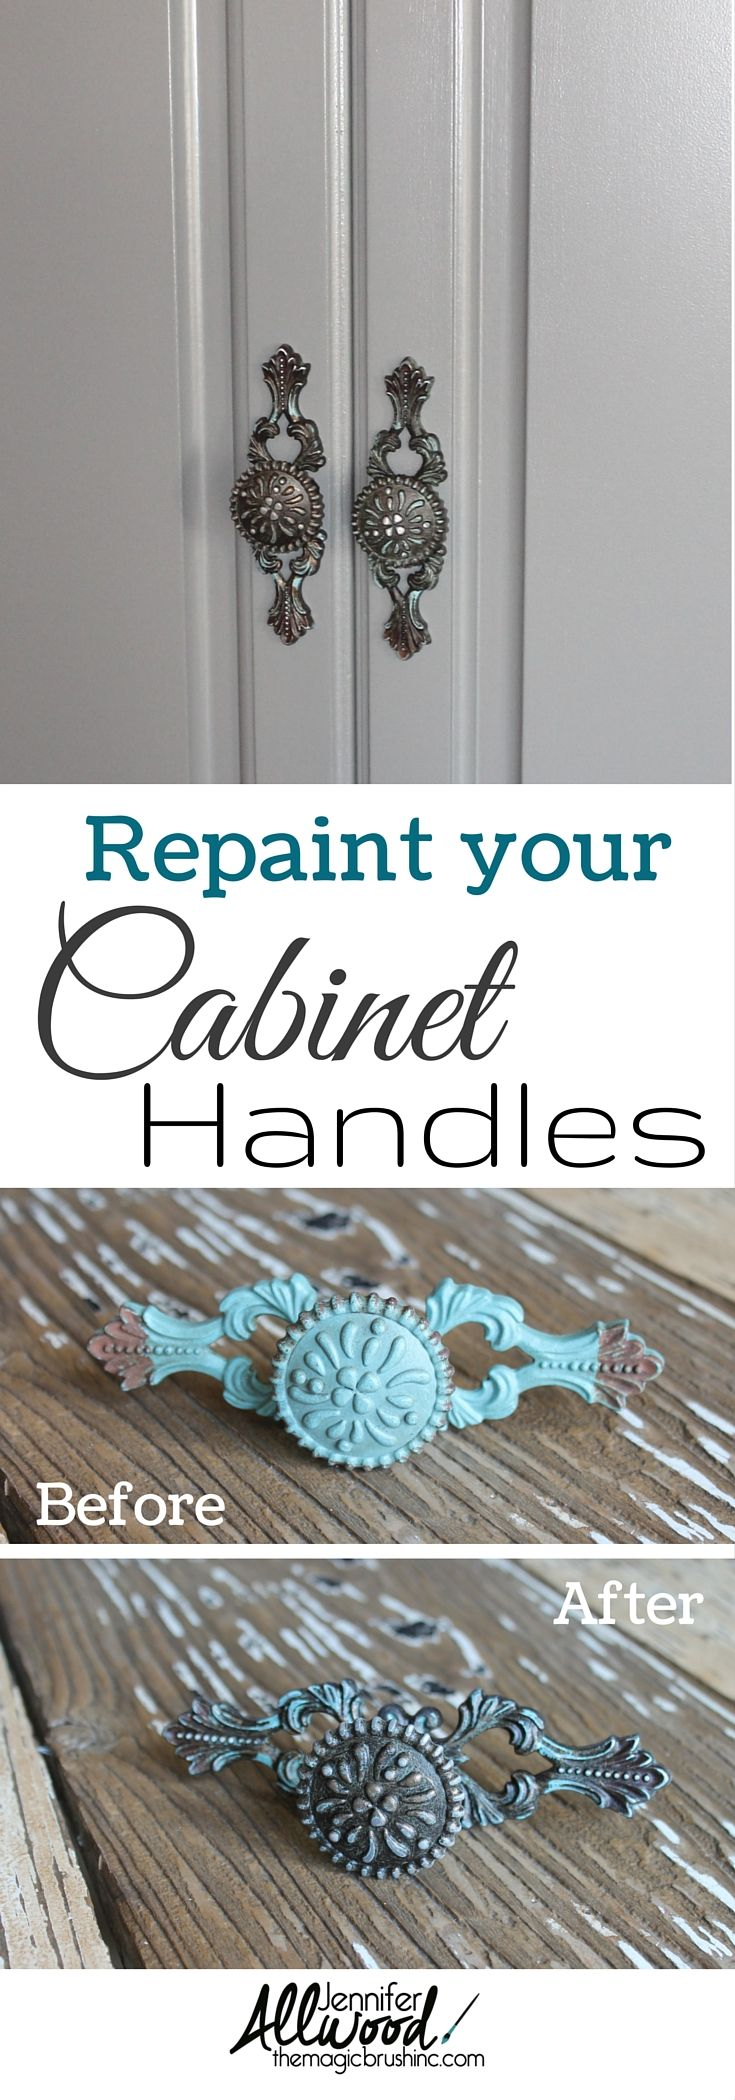 Learn how to repaint your cabinet and pantry handles! Turn any wrong color into the right one! More painting tips from theMagicBrushinc.com